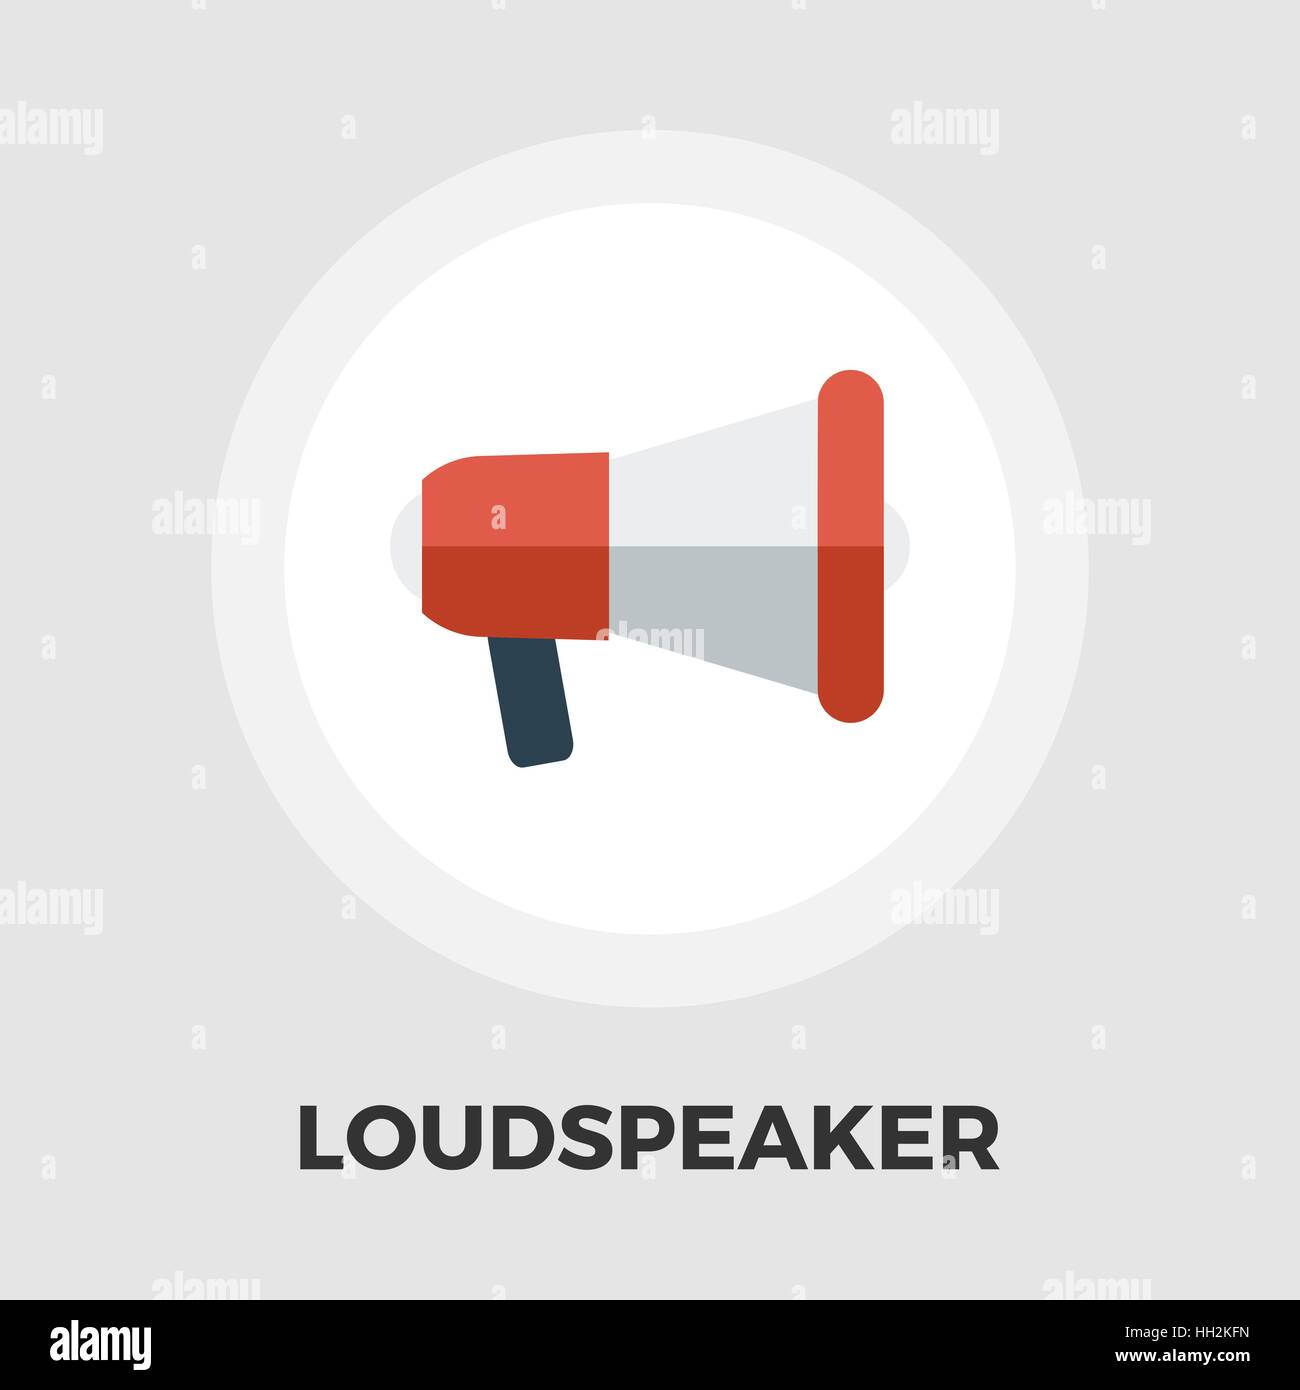 Loudspeaker icon vector. Flat icon isolated on the white background. Editable EPS file. Vector illustration. - Stock Vector